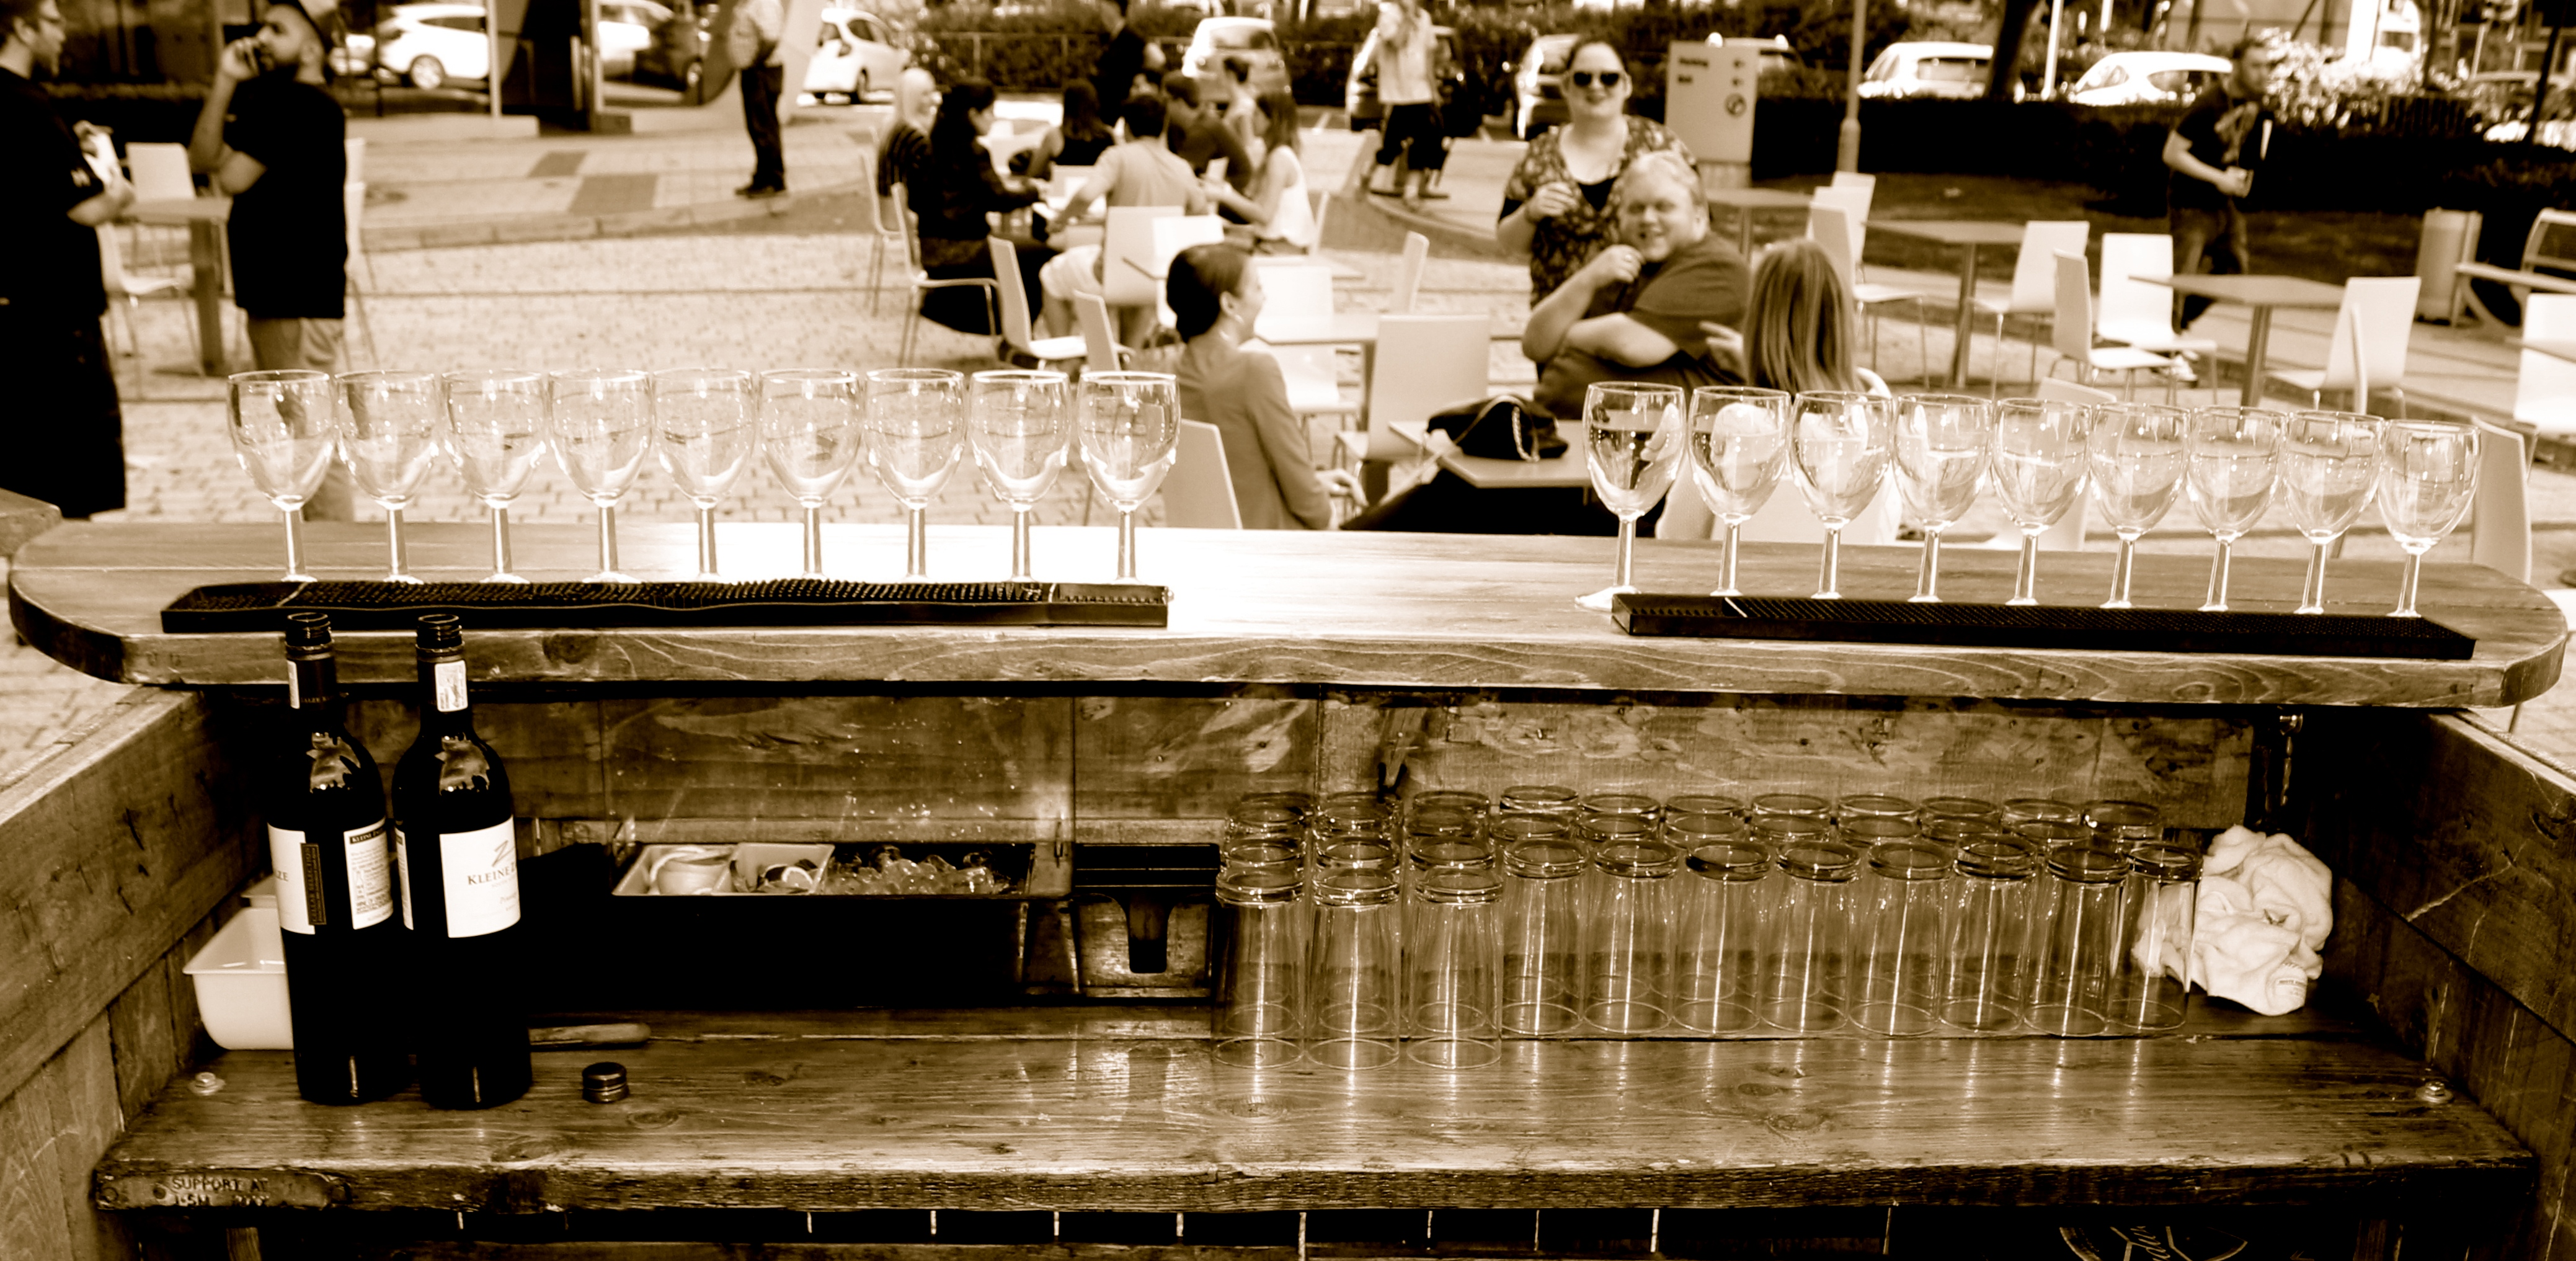 You know we do Mobile Bars as well...right!? - Image 4